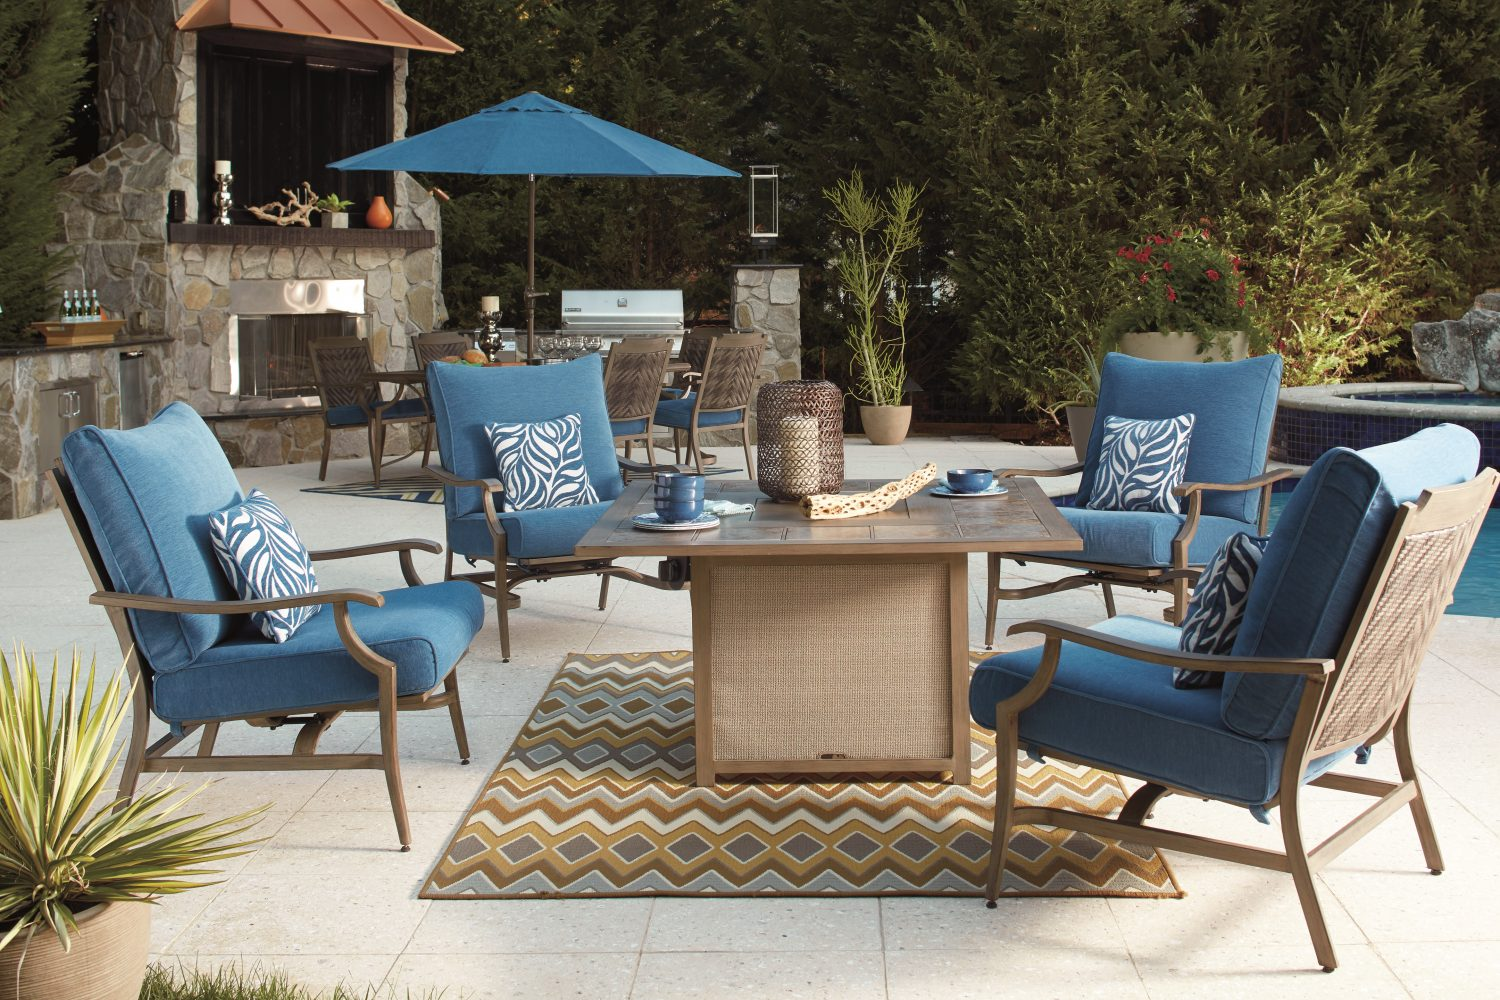 patio and outdoor living space ideas ashley furniture homestore. Black Bedroom Furniture Sets. Home Design Ideas